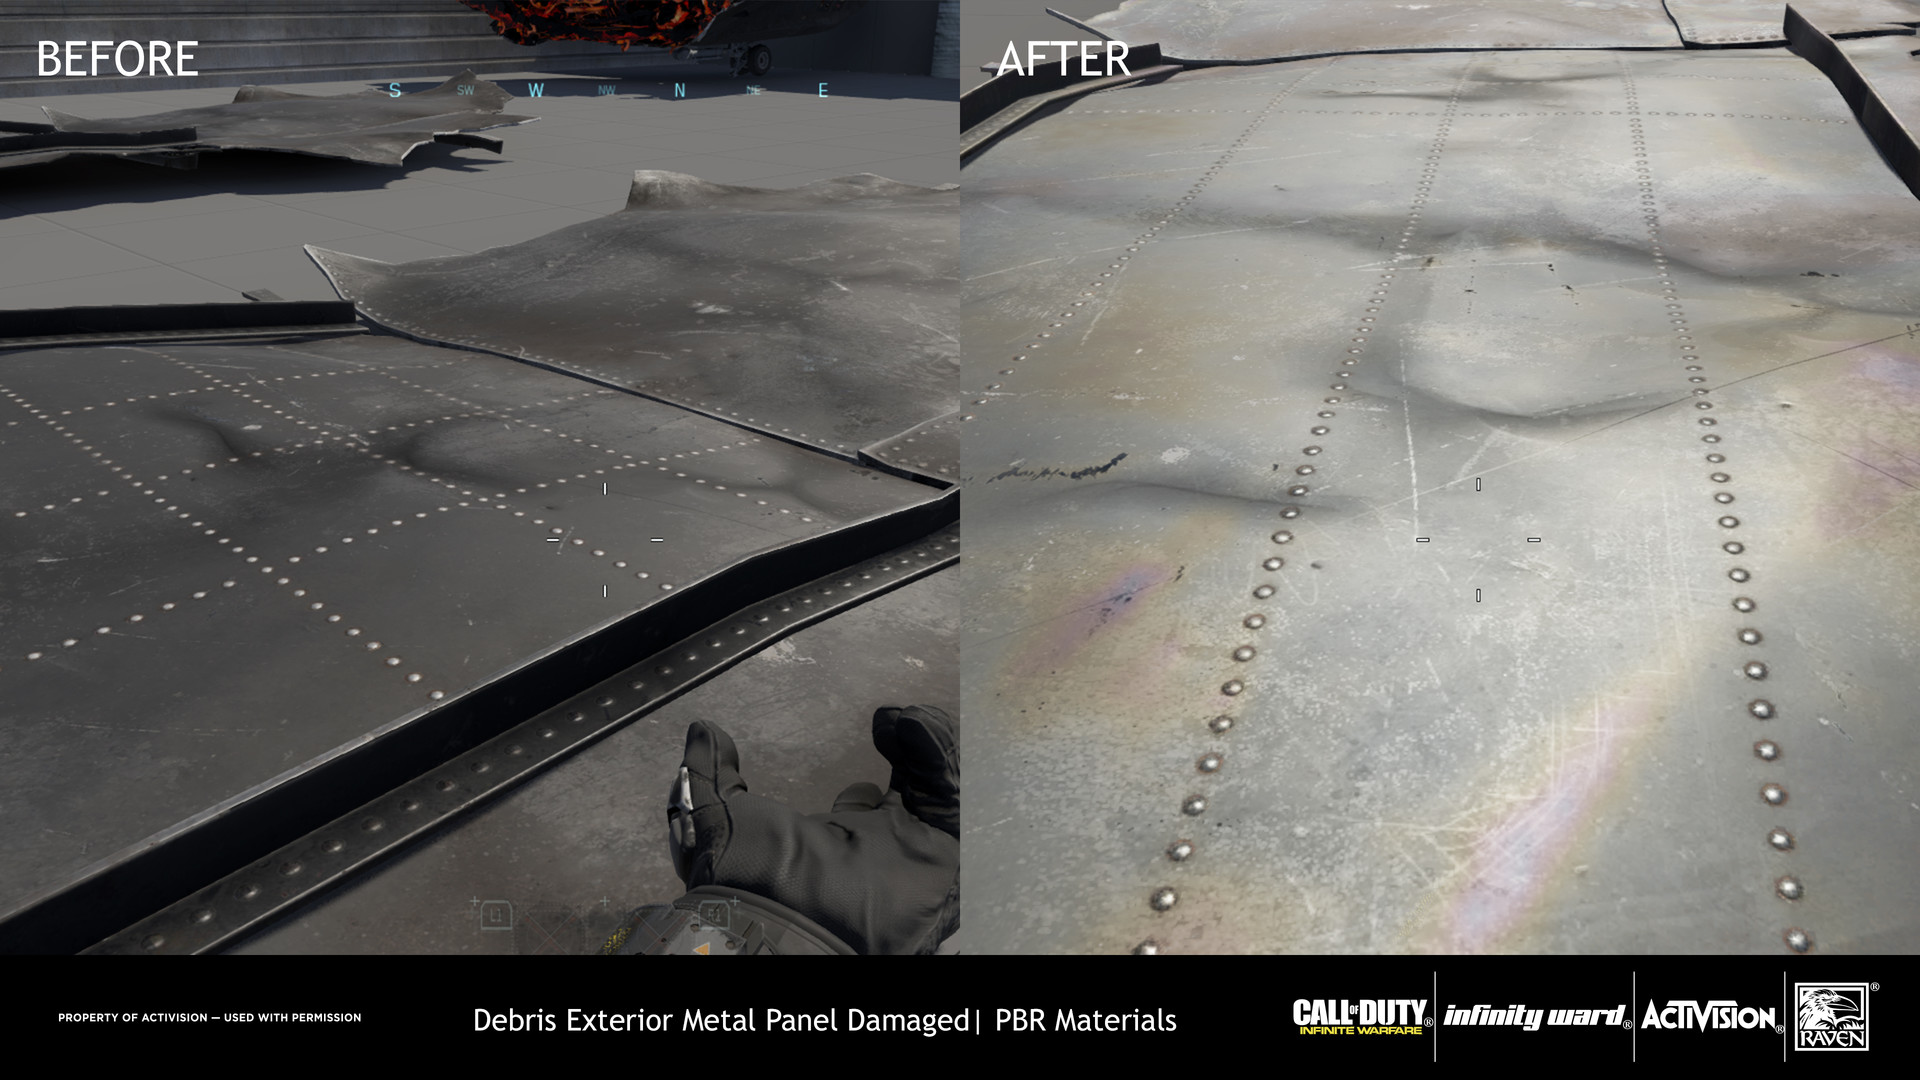 This was treated as a damaged metal were the diffuse could be at lighter value than black as well as the lowering of the specular value. Using a Specular Occlusion map generated from the Normal map, a mask for the Iridescence shader was applied.